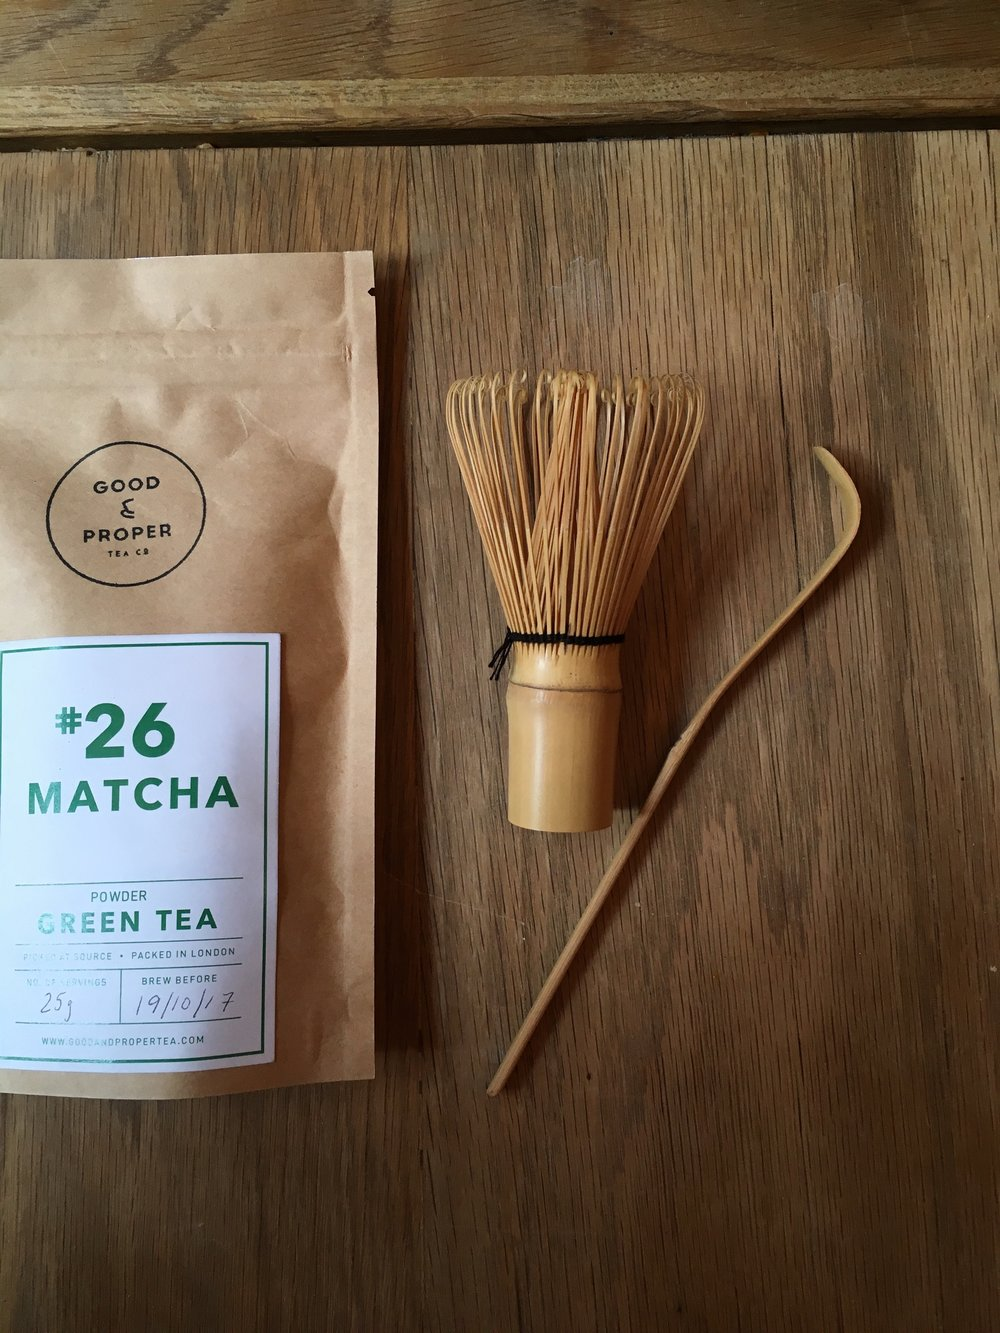 Ceremonial Grade Matcha, Bamboo Whisk + Bamboo Scoop